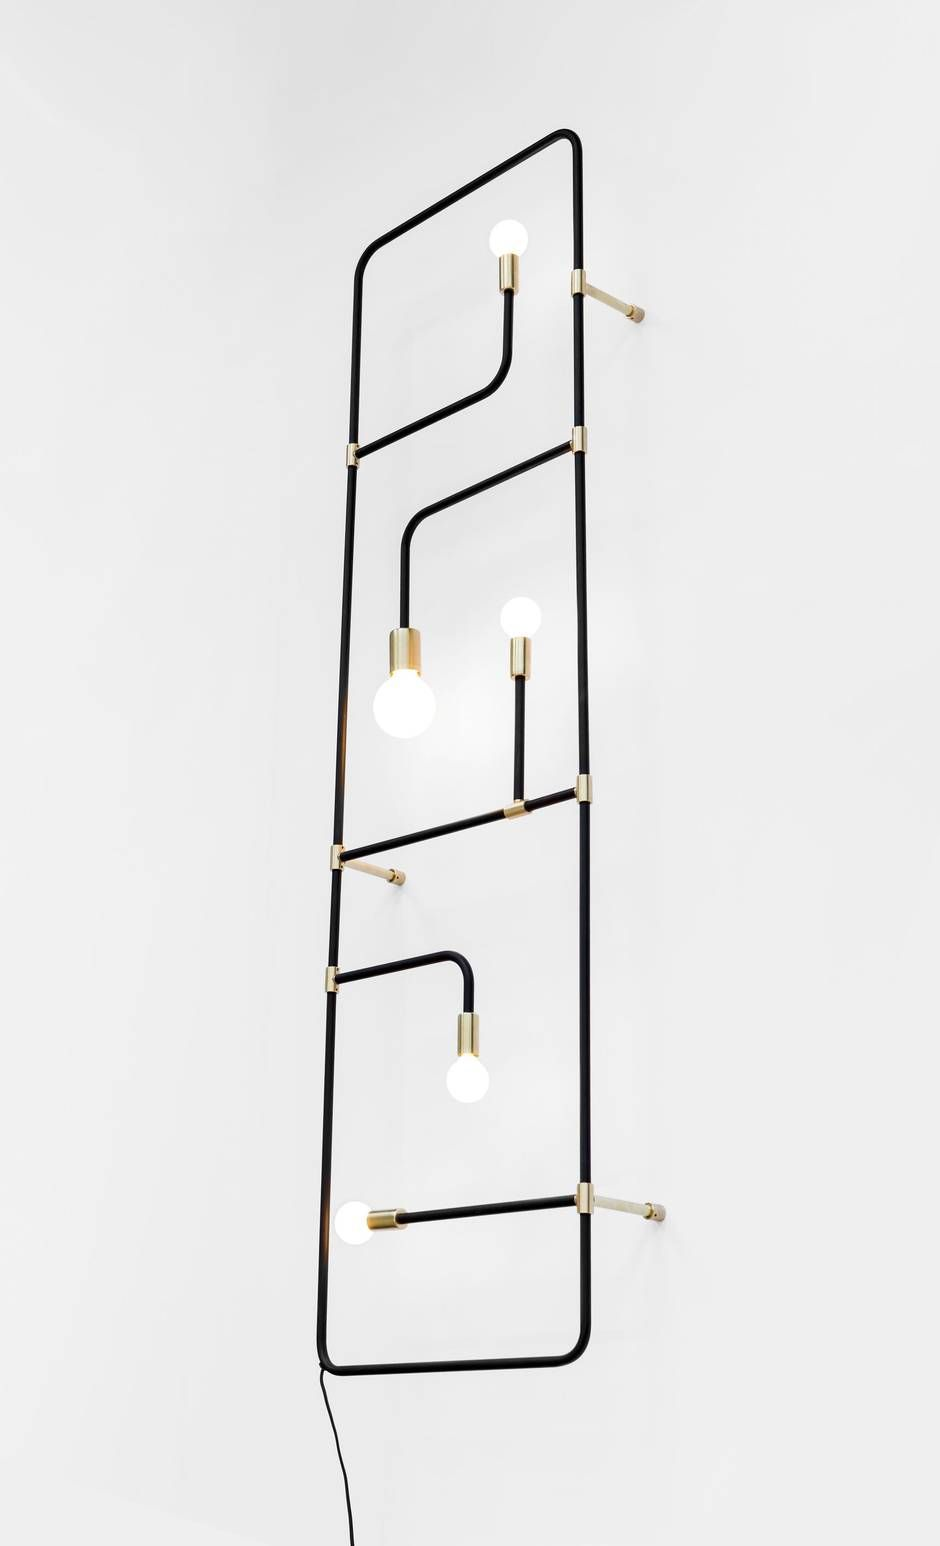 Six spectacular light fixtures that will brighten any room - The Globe and Mail